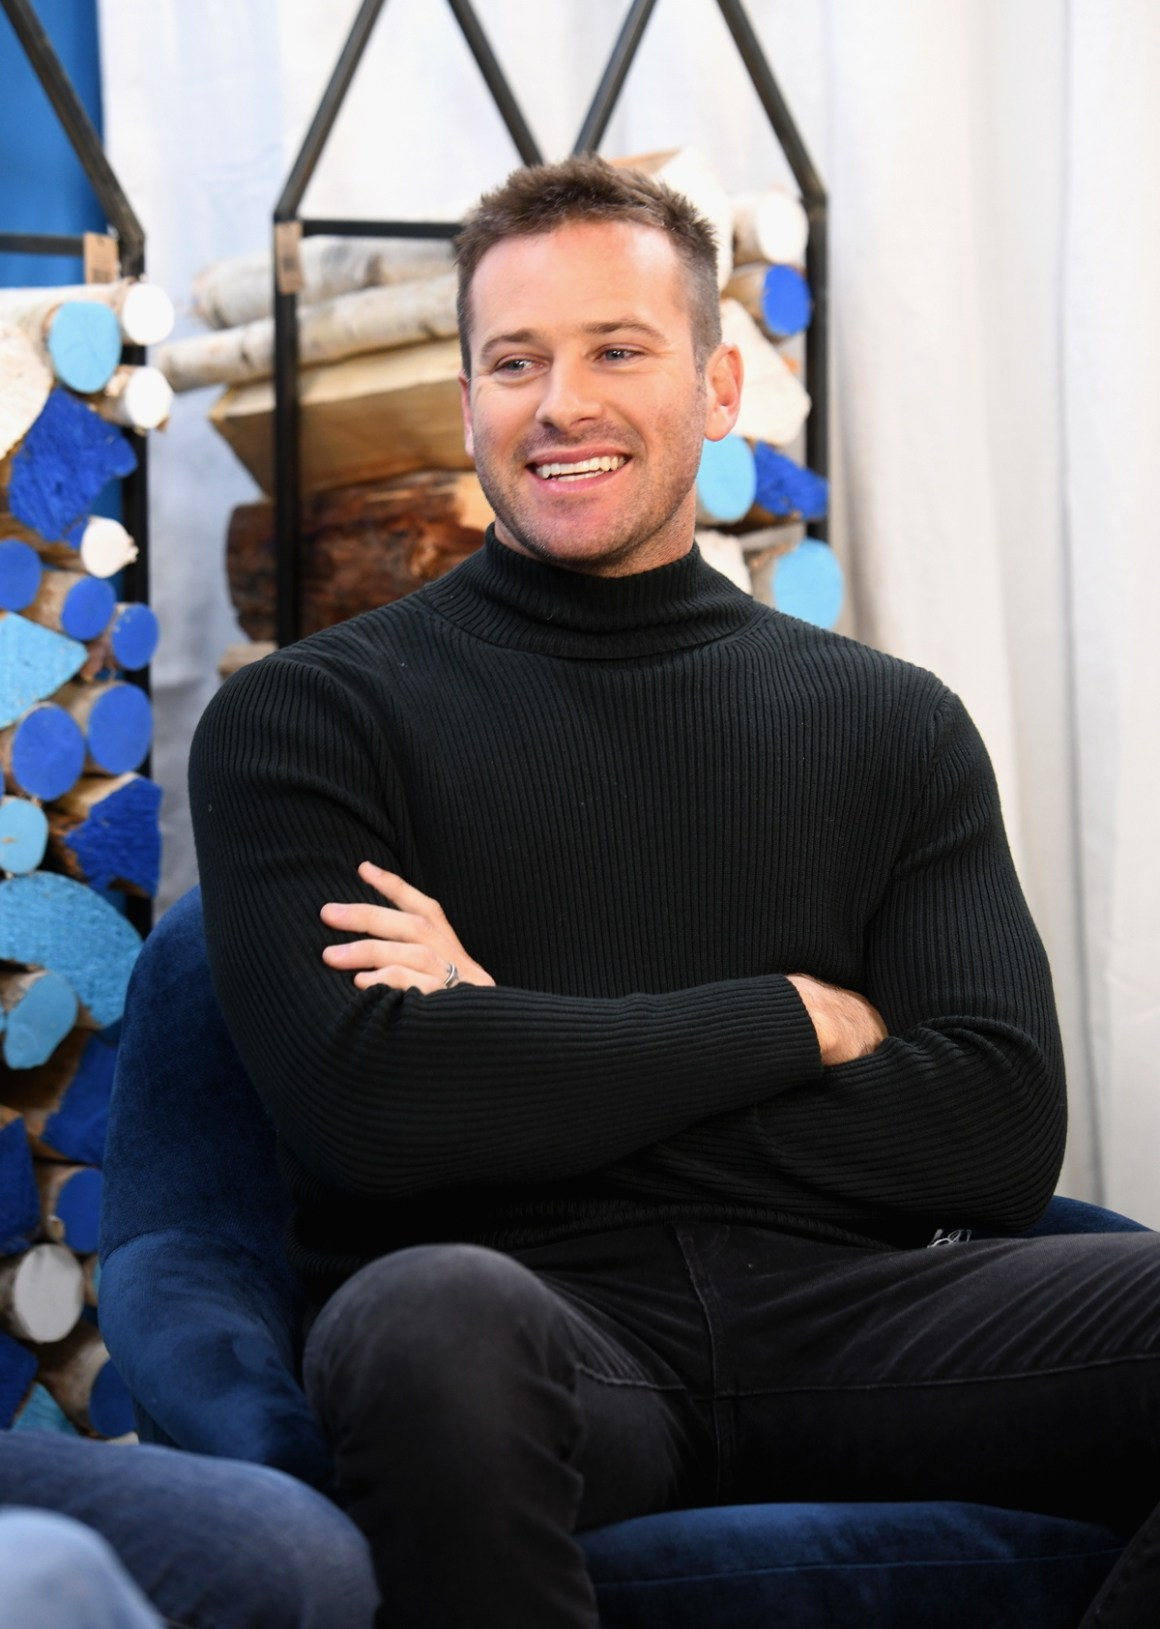 Armie Hammer The Vulture Spot At Sundance - DAY 2